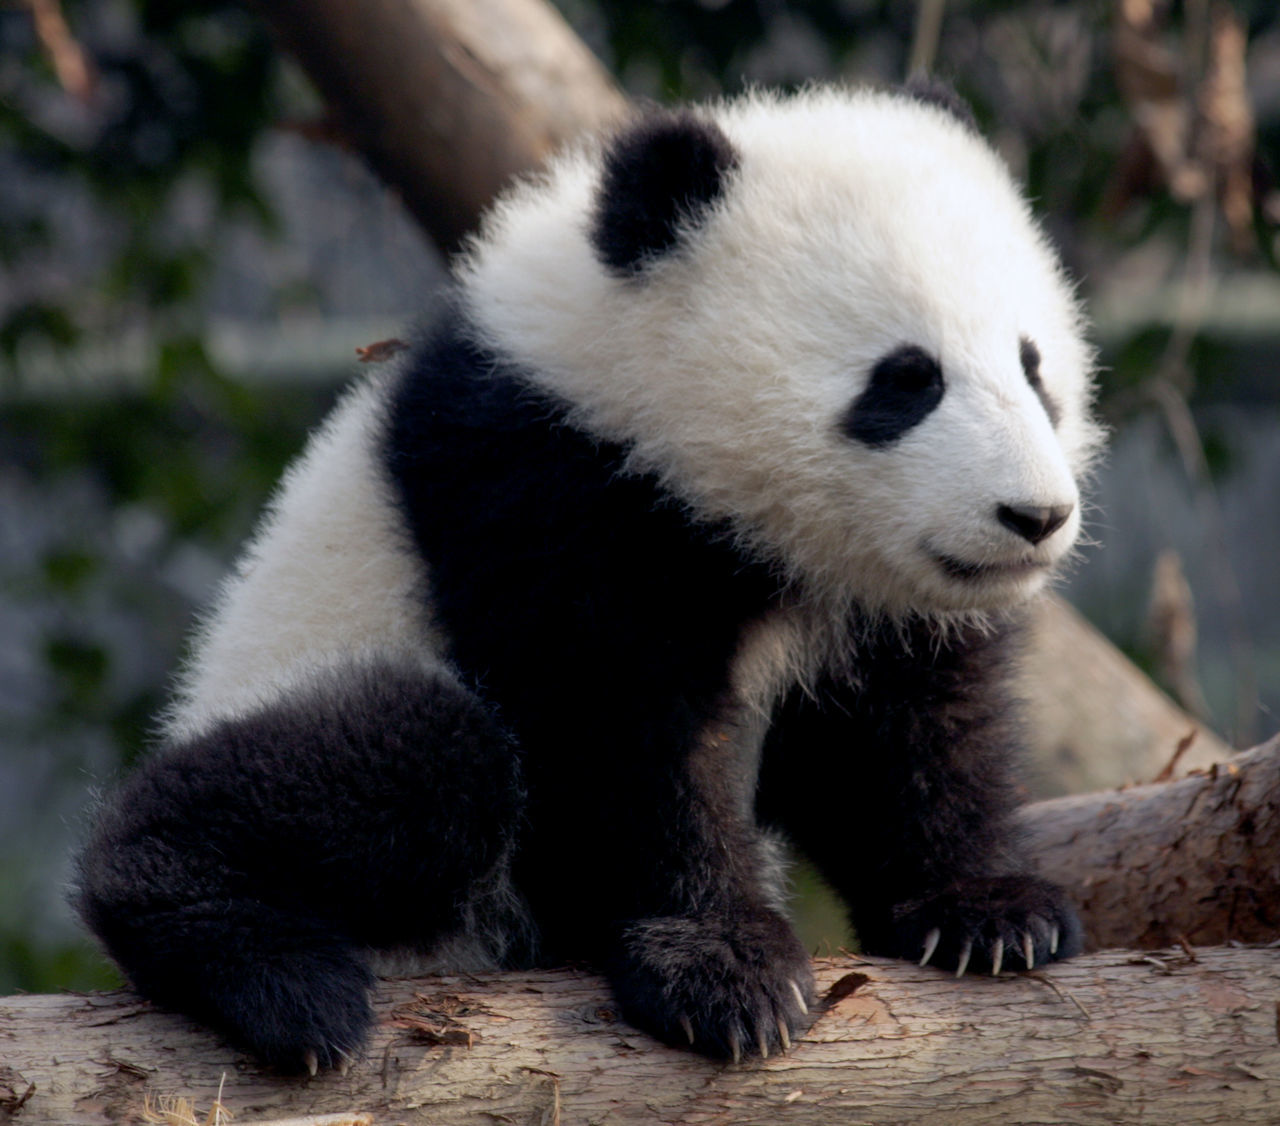 one animal, bear, animals in the wild, mammal, panda - animal, animal themes, giant panda, panda, wildlife, no people, focus on foreground, animal wildlife, close-up, day, endangered species, outdoors, sitting, nature